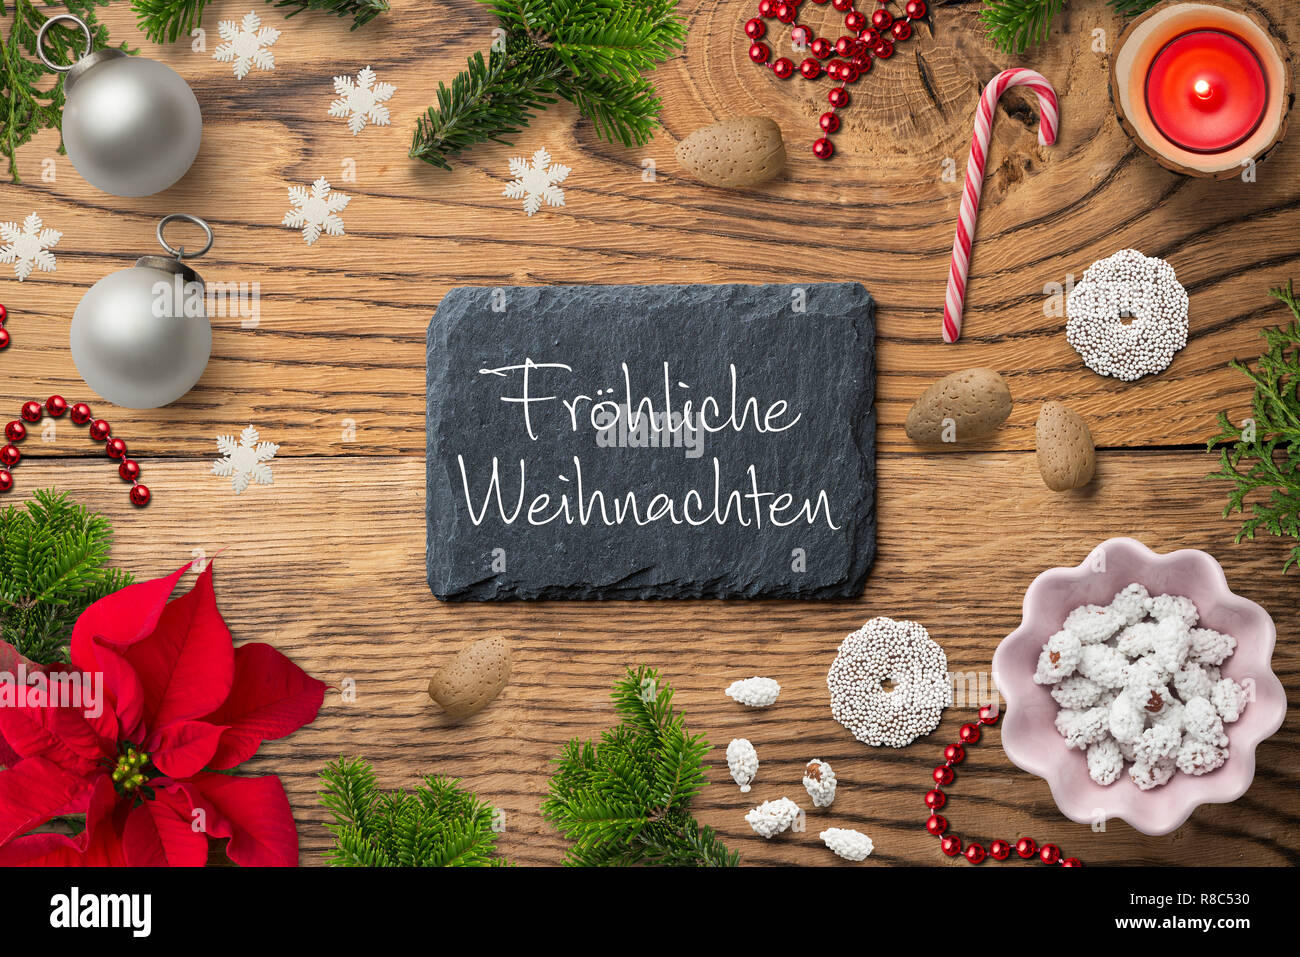 Christmas decoration on rustic wooden background and the German message for 'Merry Christmas!' - Stock Image